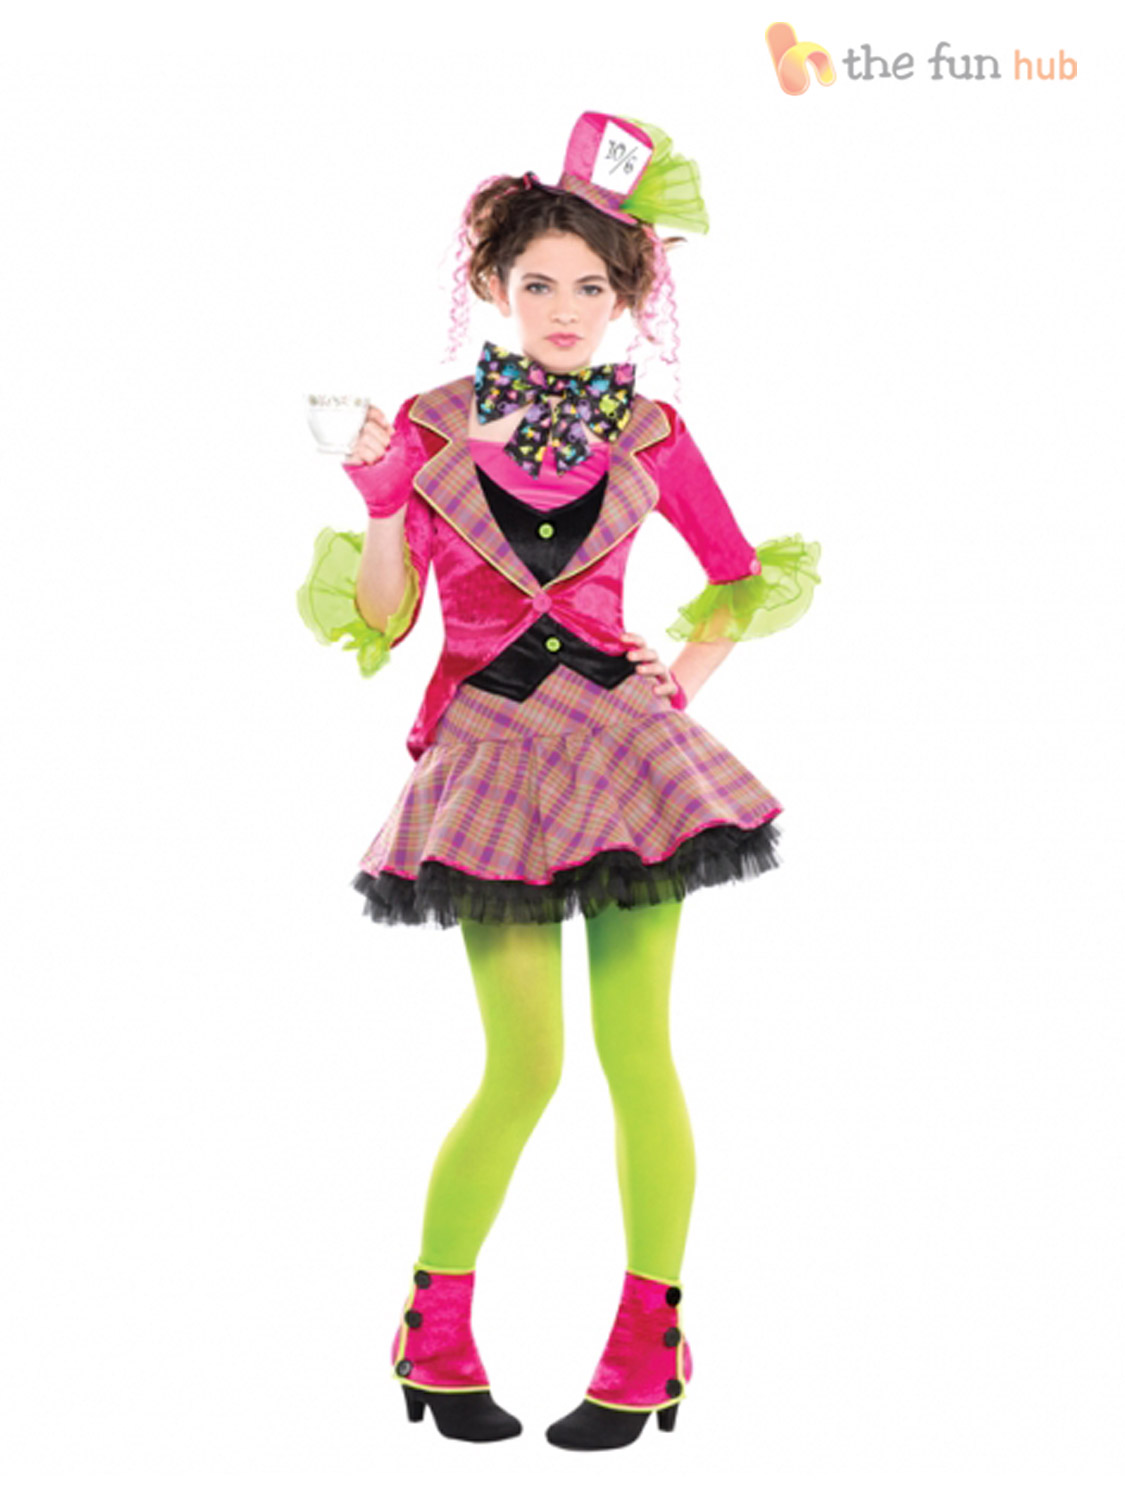 Details about Age 10,16 Girls Mad Hatter Costume Tea Party Teen Fancy Dress  Book Day Week